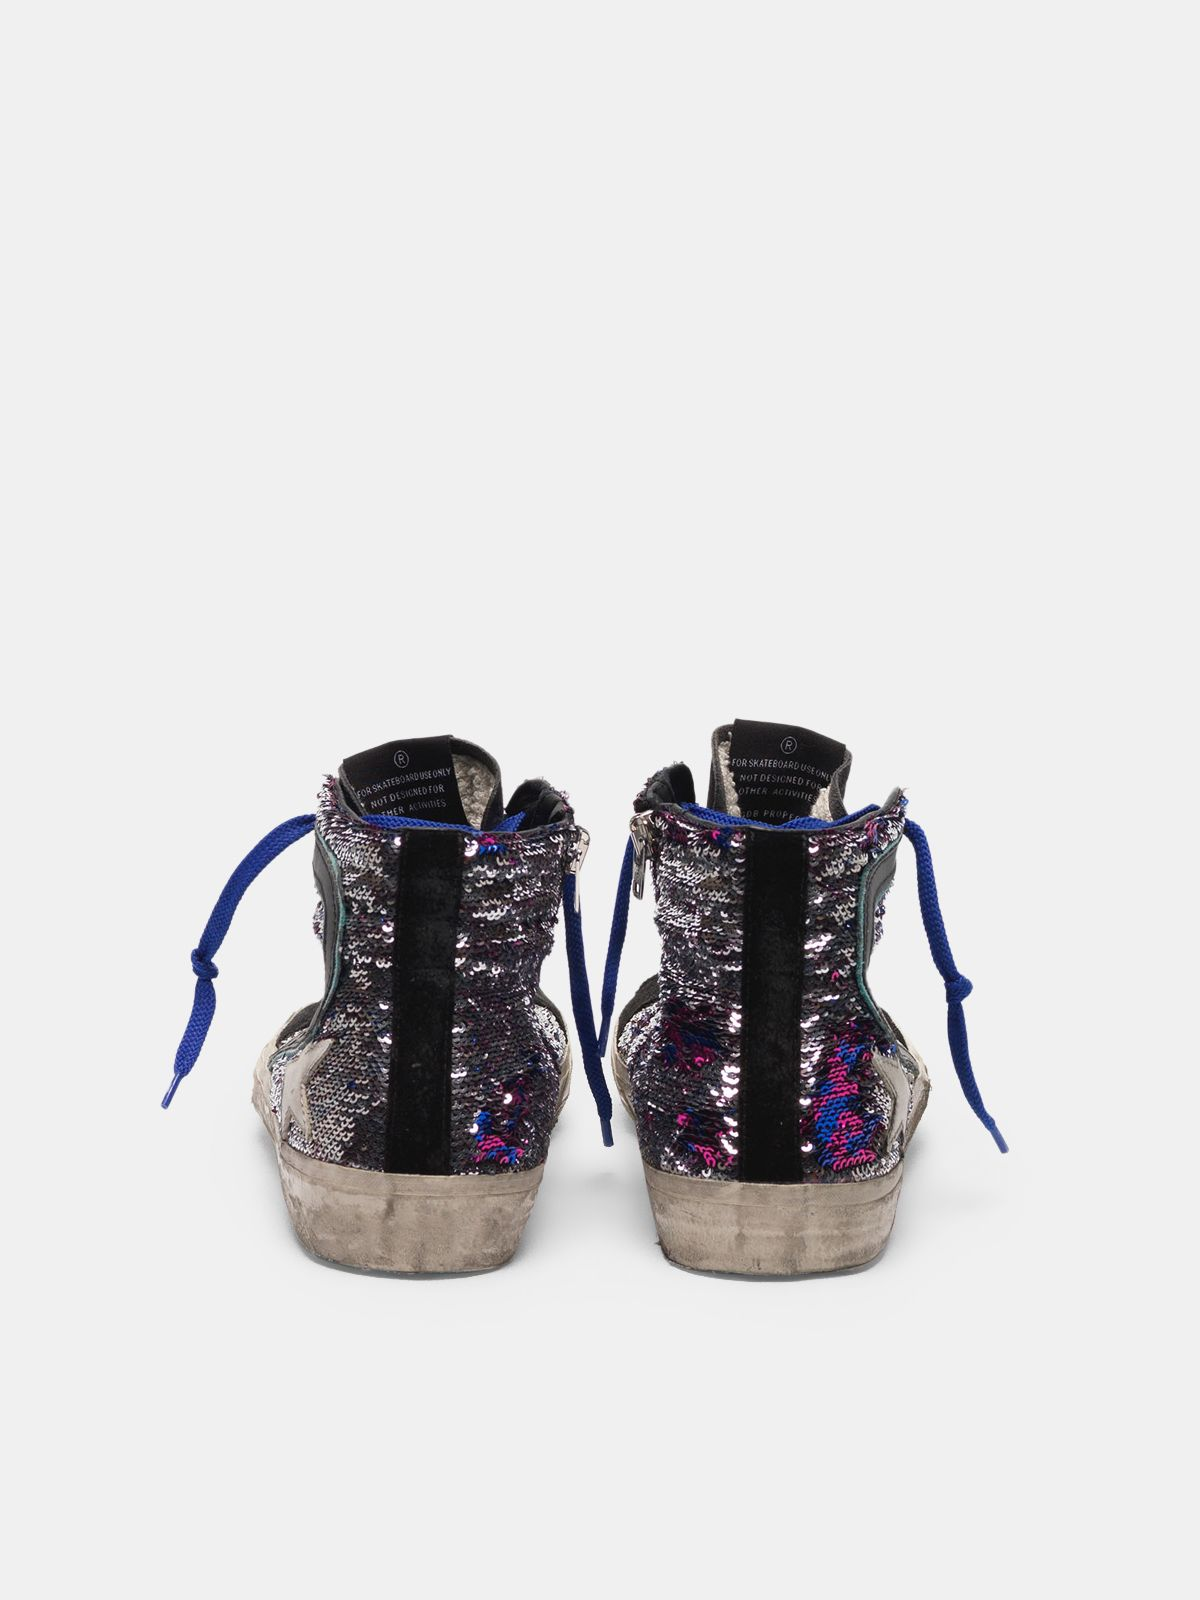 Golden Goose - Slide sneakers in suede and sequins in